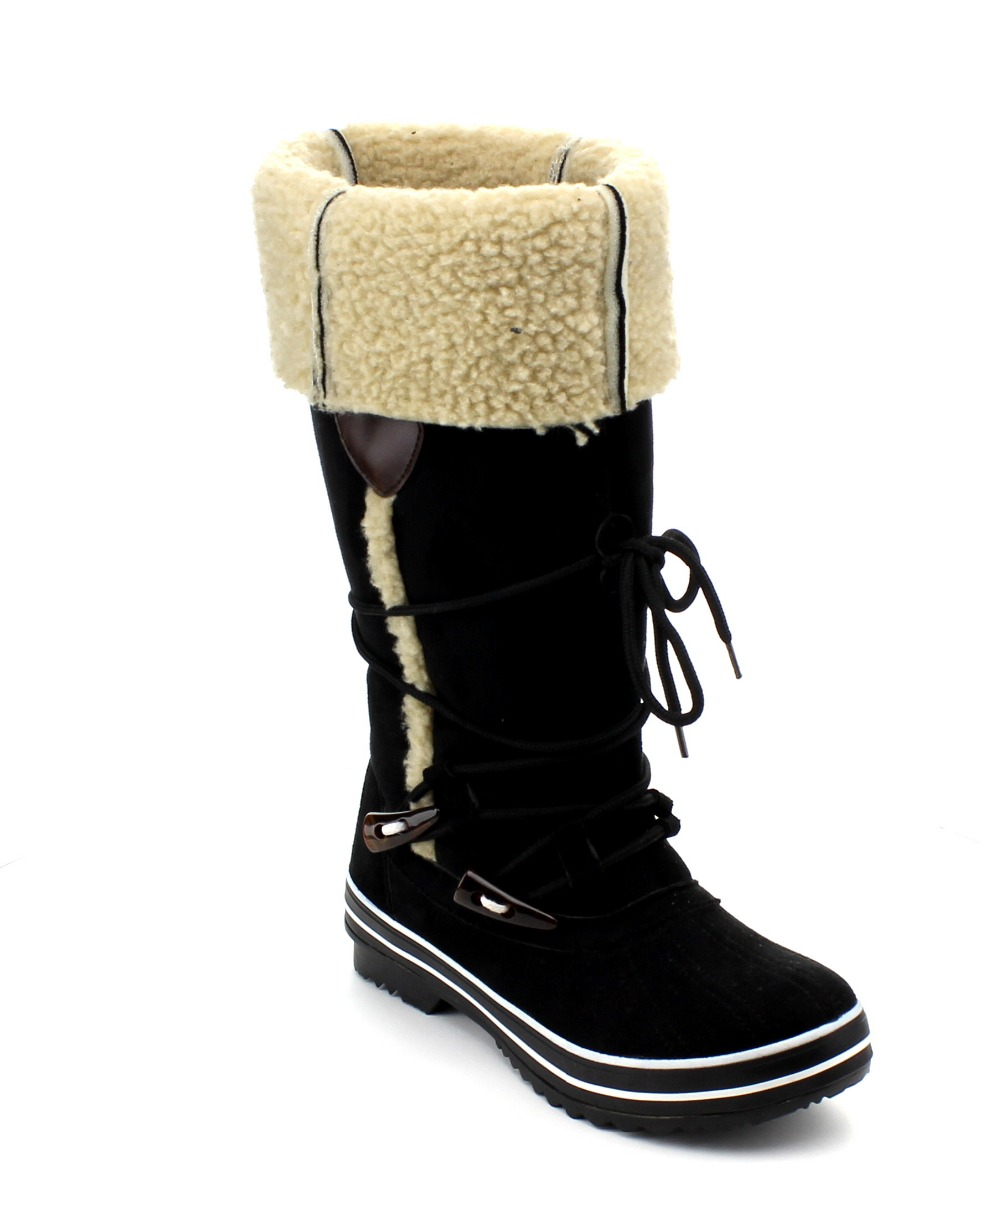 Furry Snow Boots HJw1wjkE